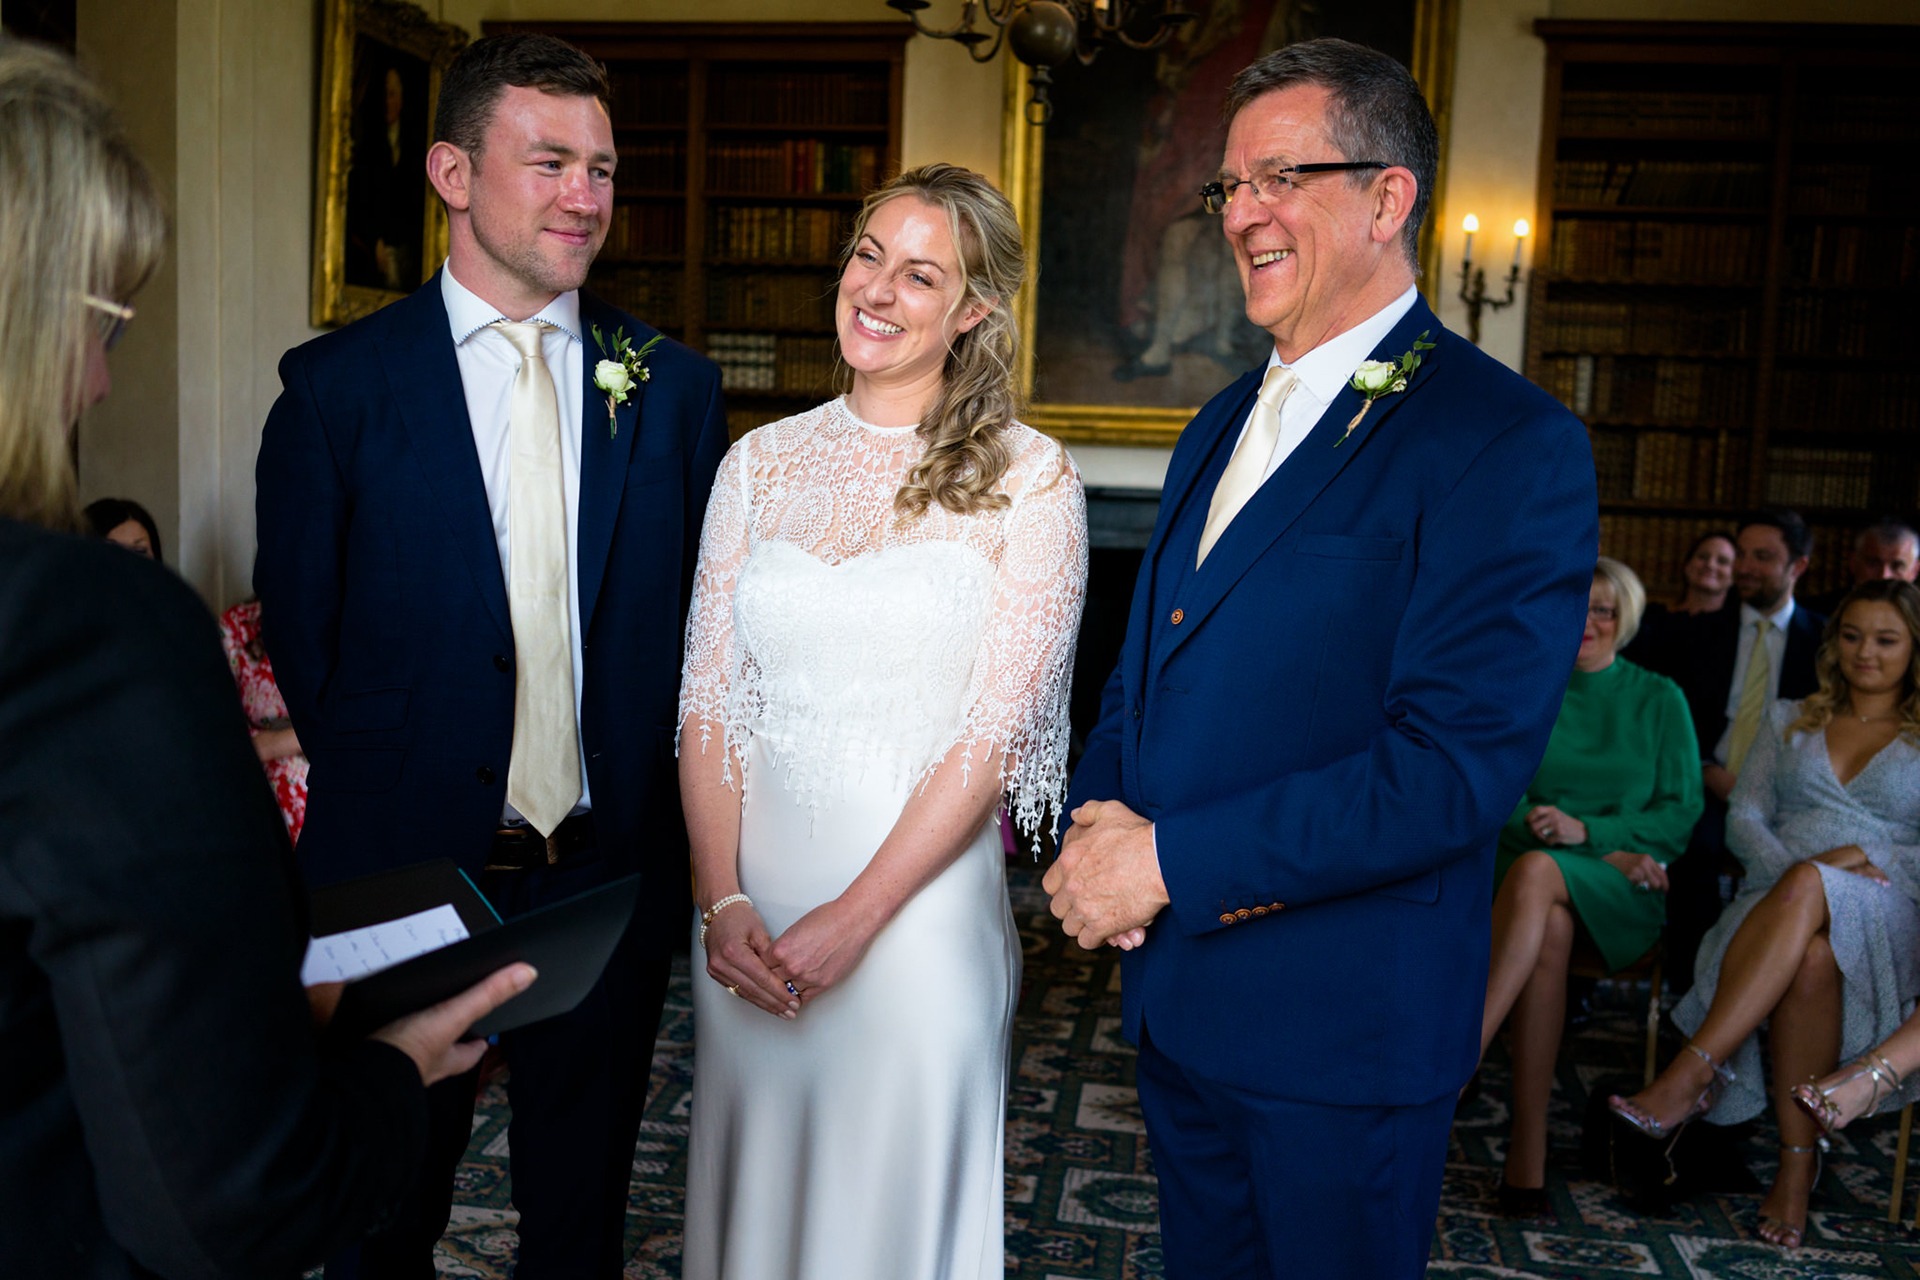 Devon, UK Elopement Ceremony Photography | the ceremony begins and the guests watch from their seats